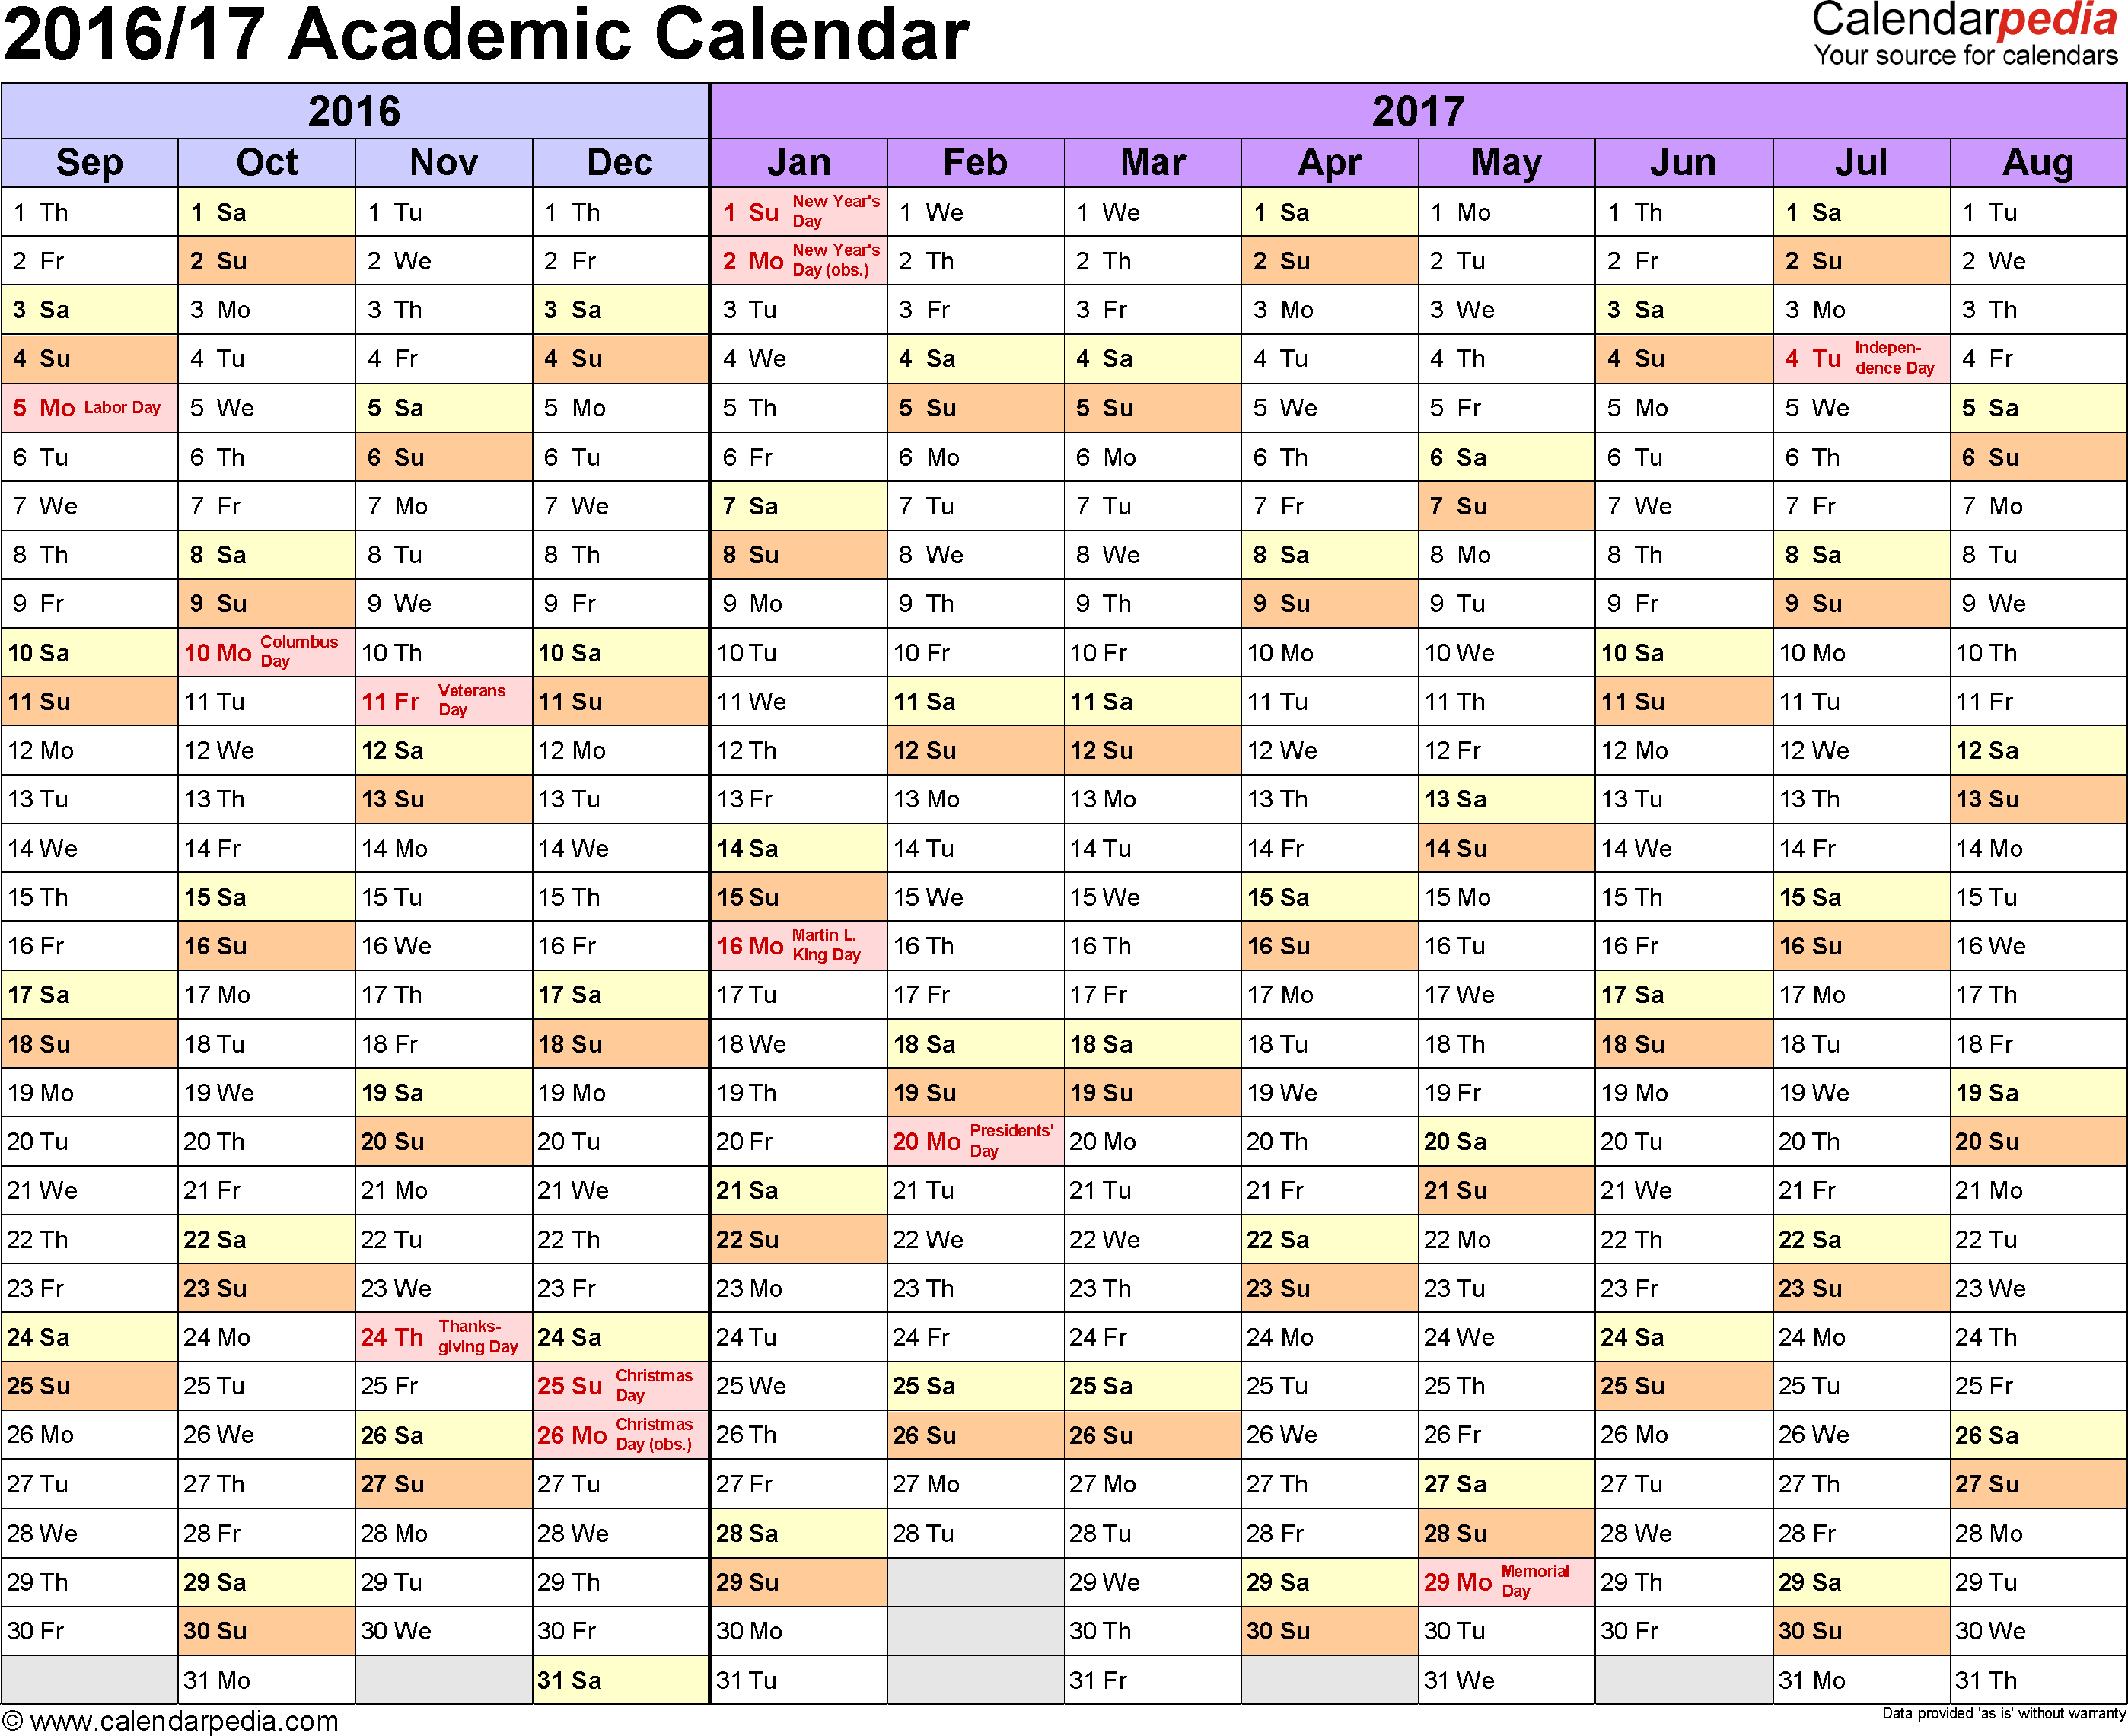 Template 1: Academic calendar 2016/17 for Word, landscape orientation, months horizontally, 1 page